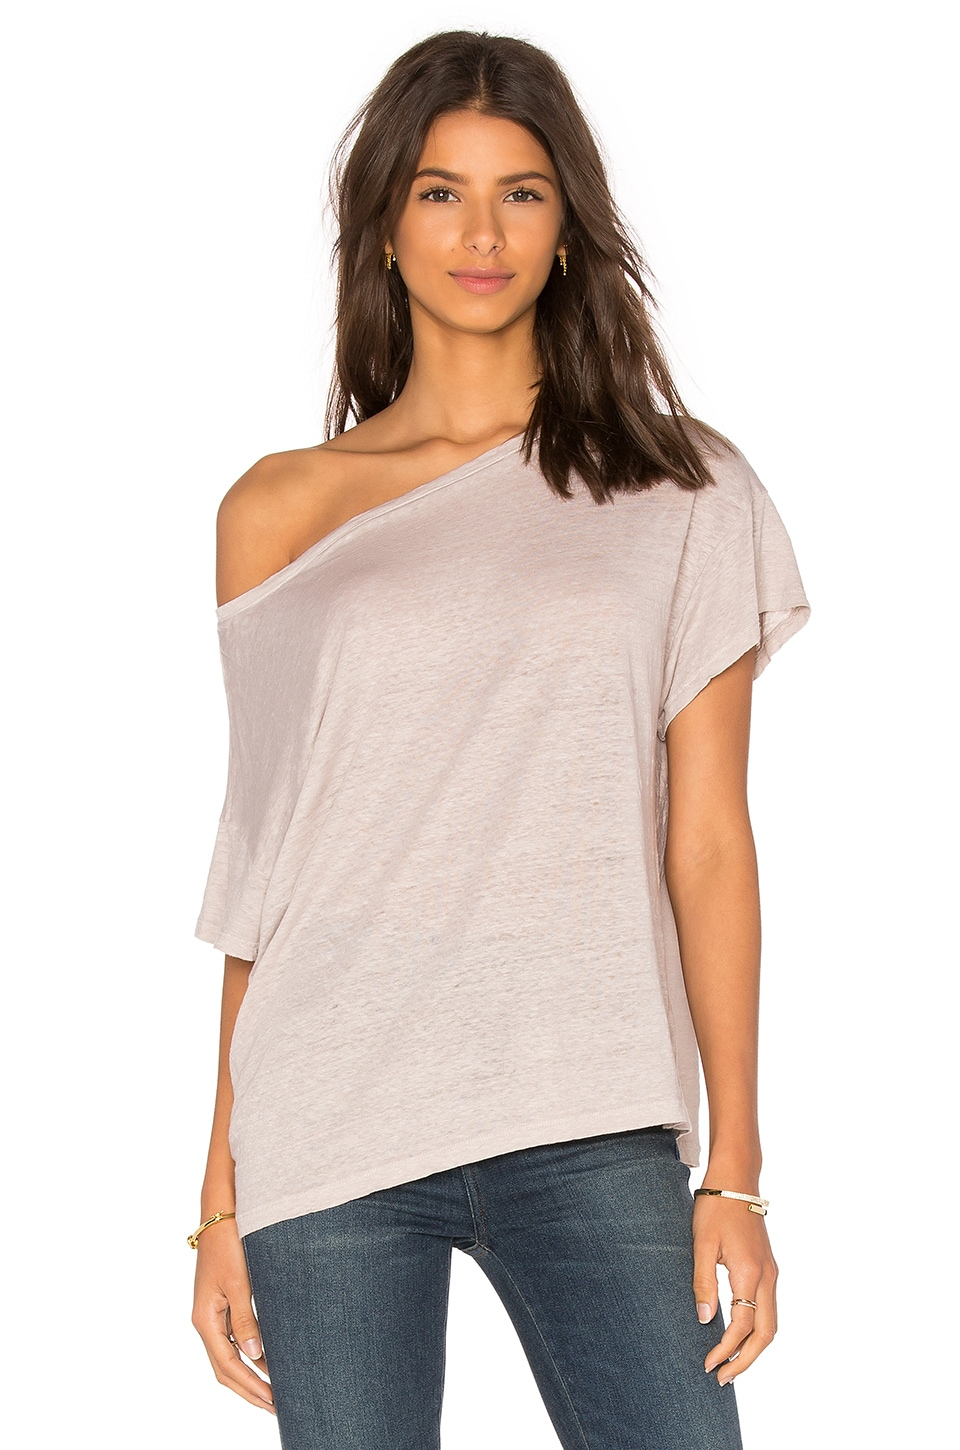 CP SHADES Ellery Tee in Oatmeal